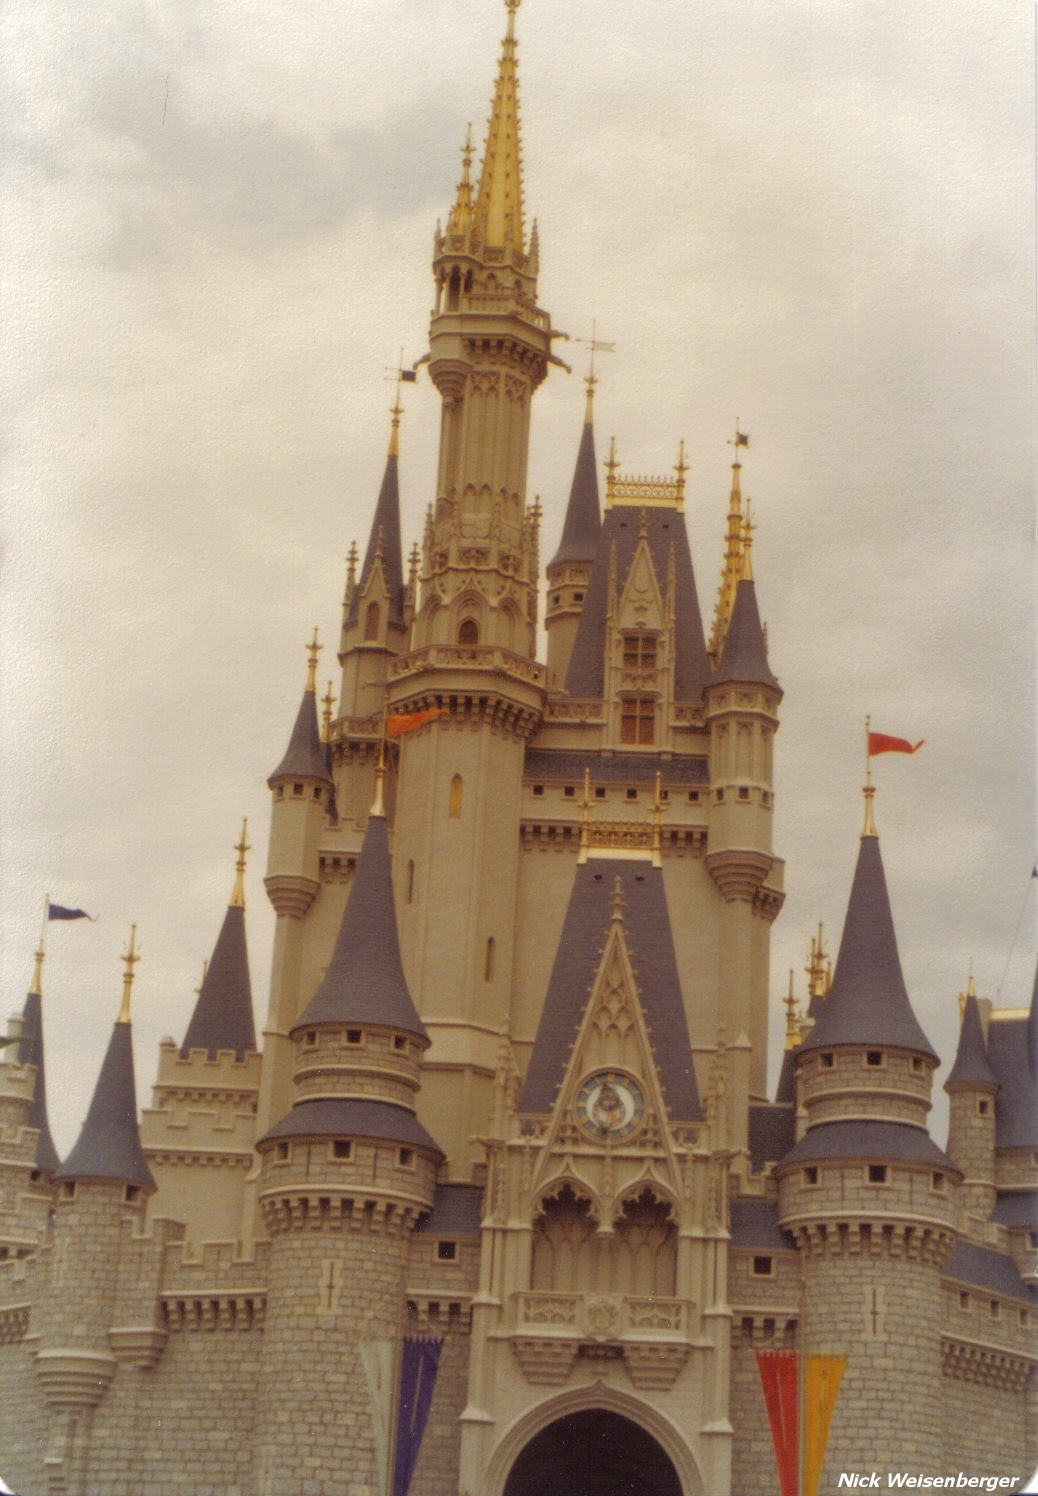 Classic shot of the castle